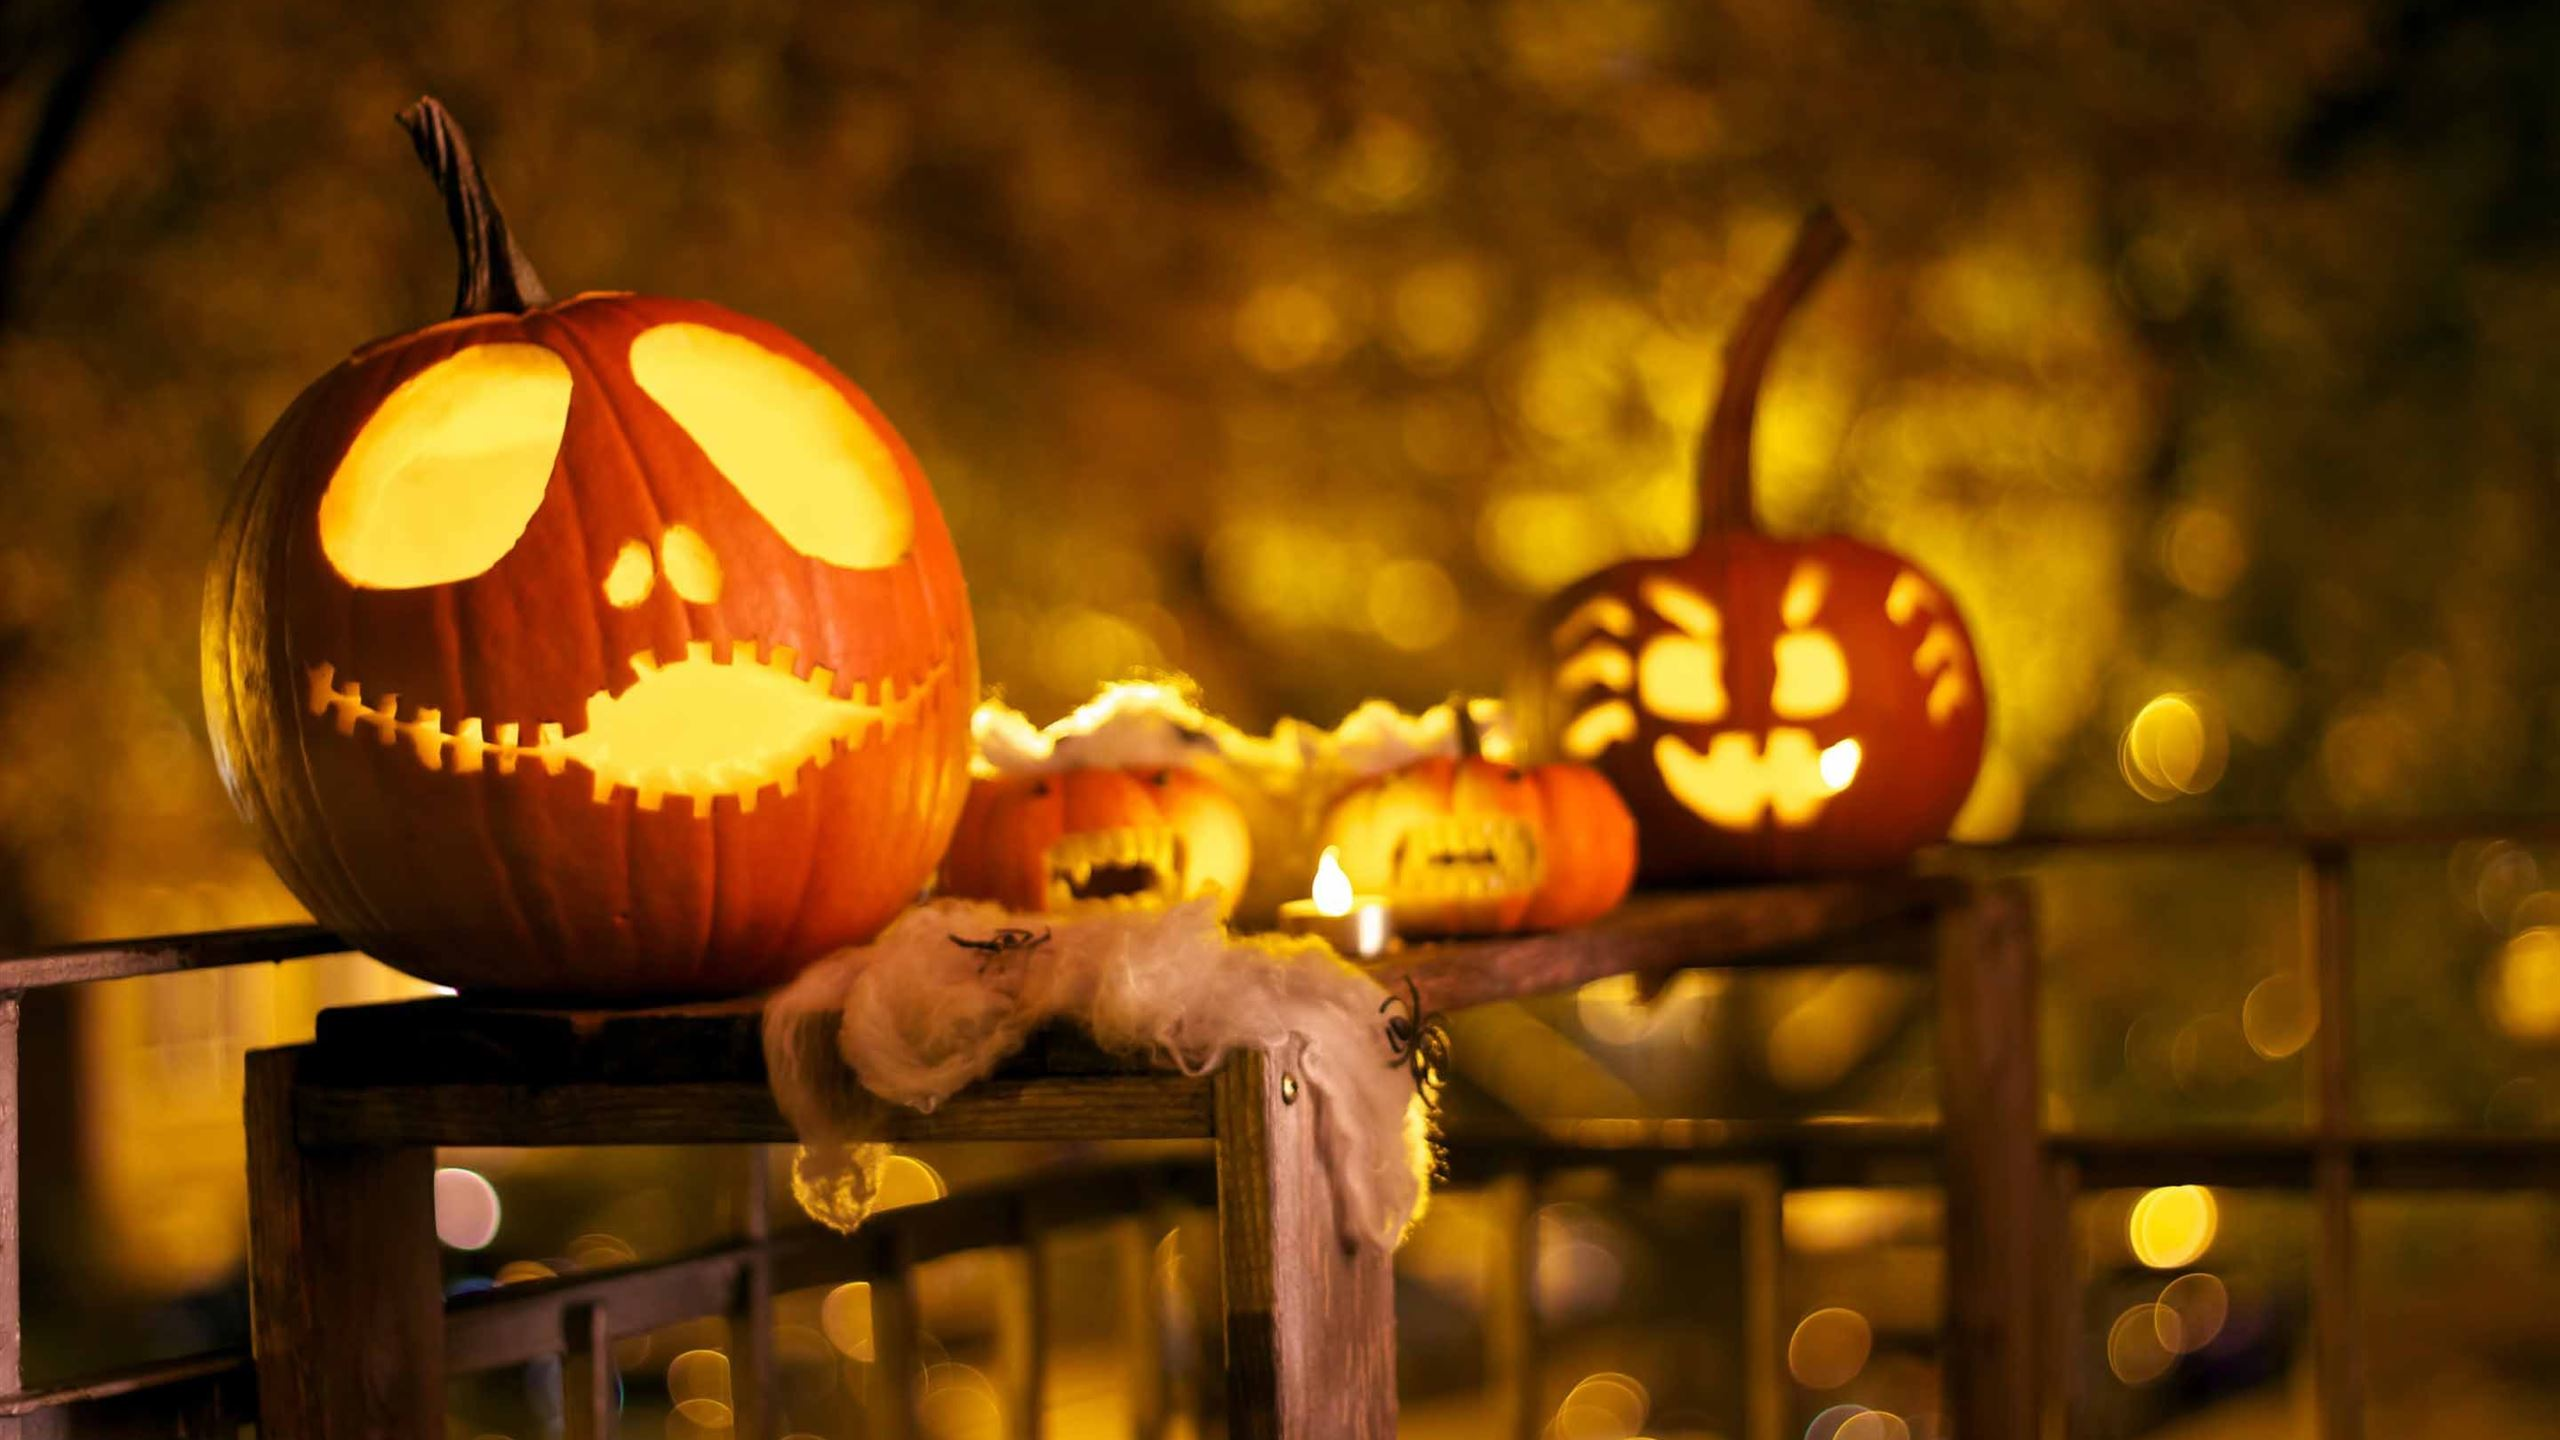 Halloween Decorations Mac Wallpaper Download | Free Mac ...